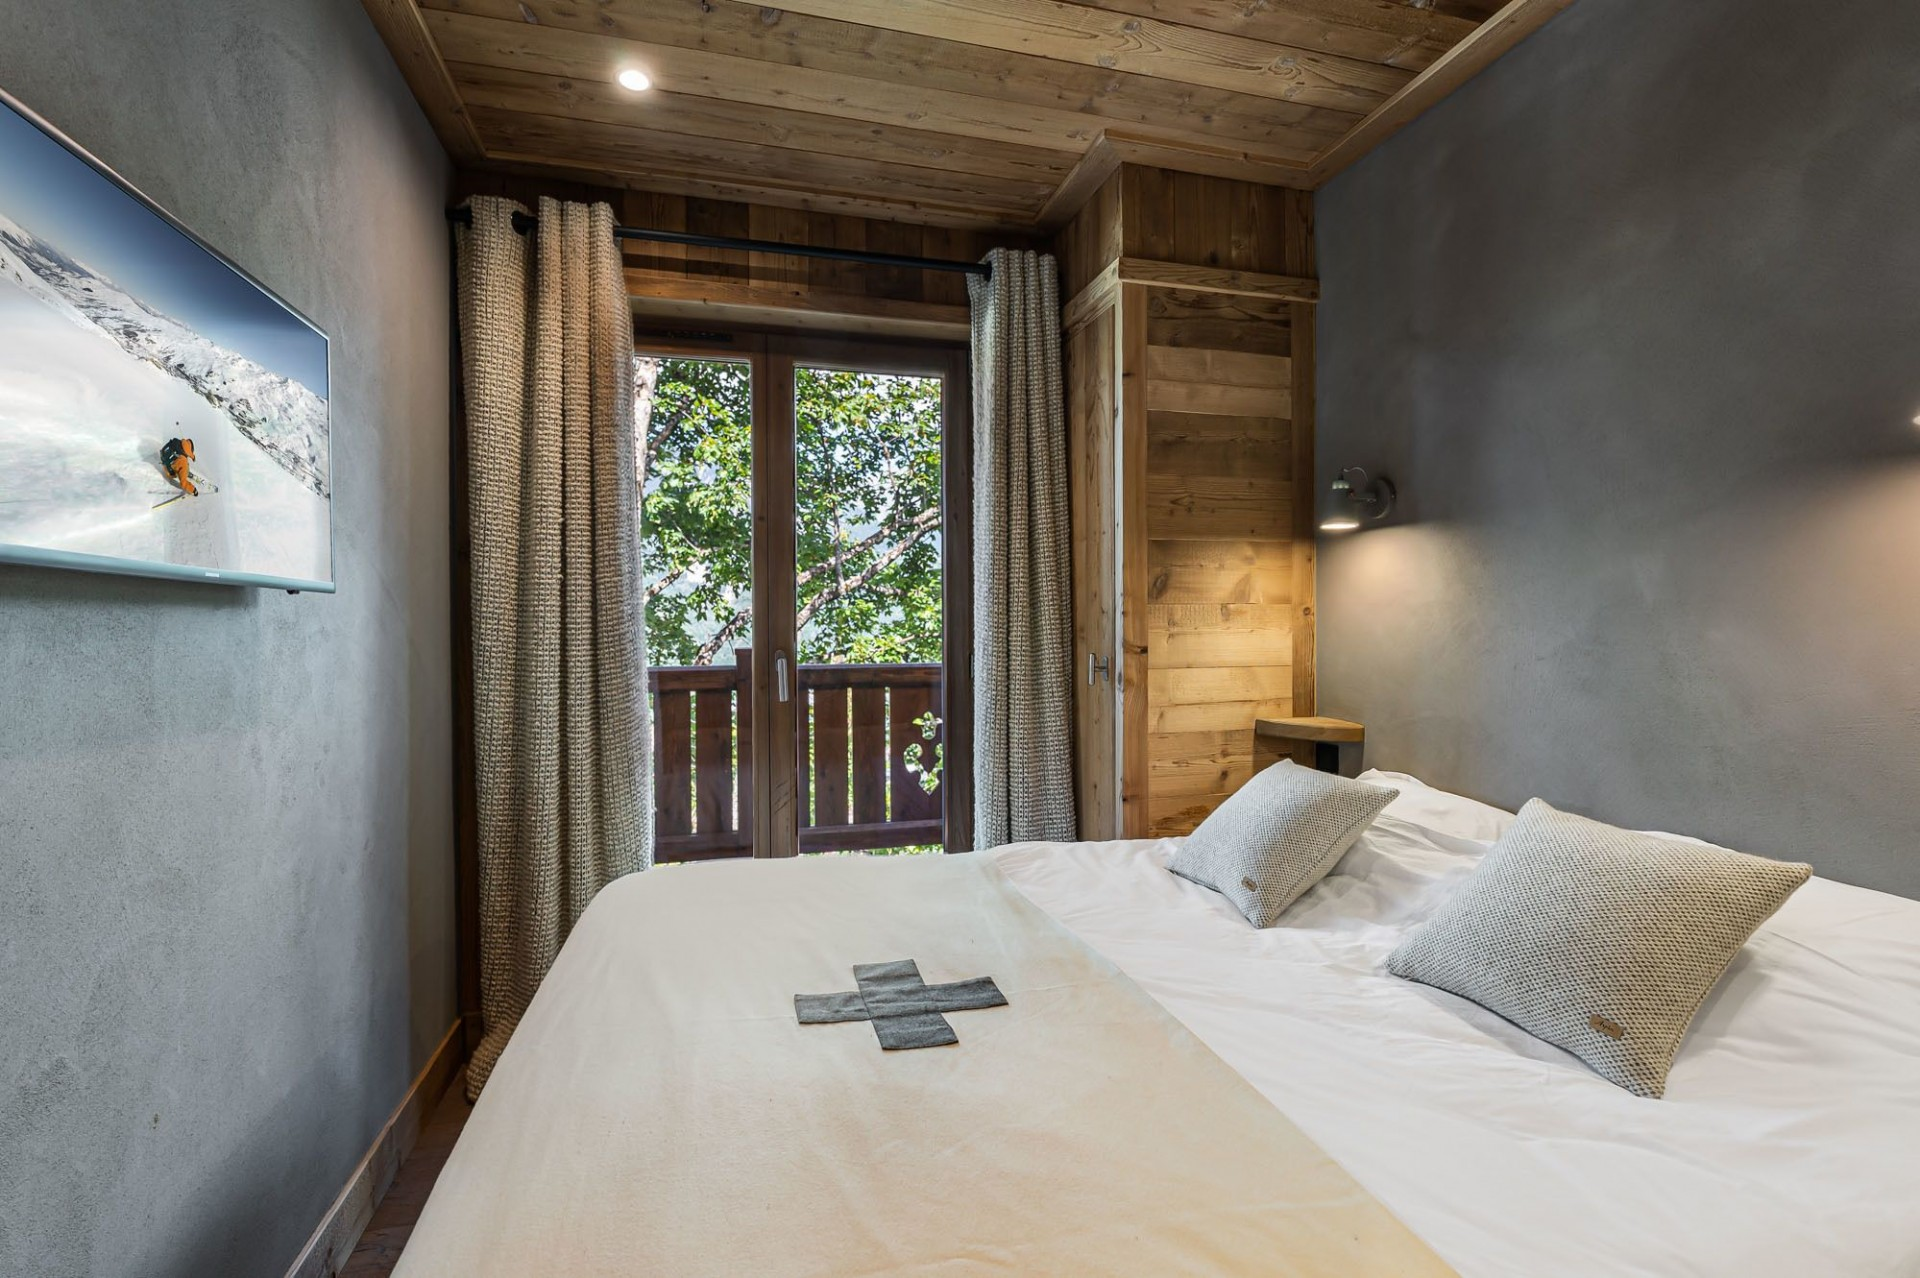 Courchevel 1300 Location Appartement Luxe Tilute Chambre 2